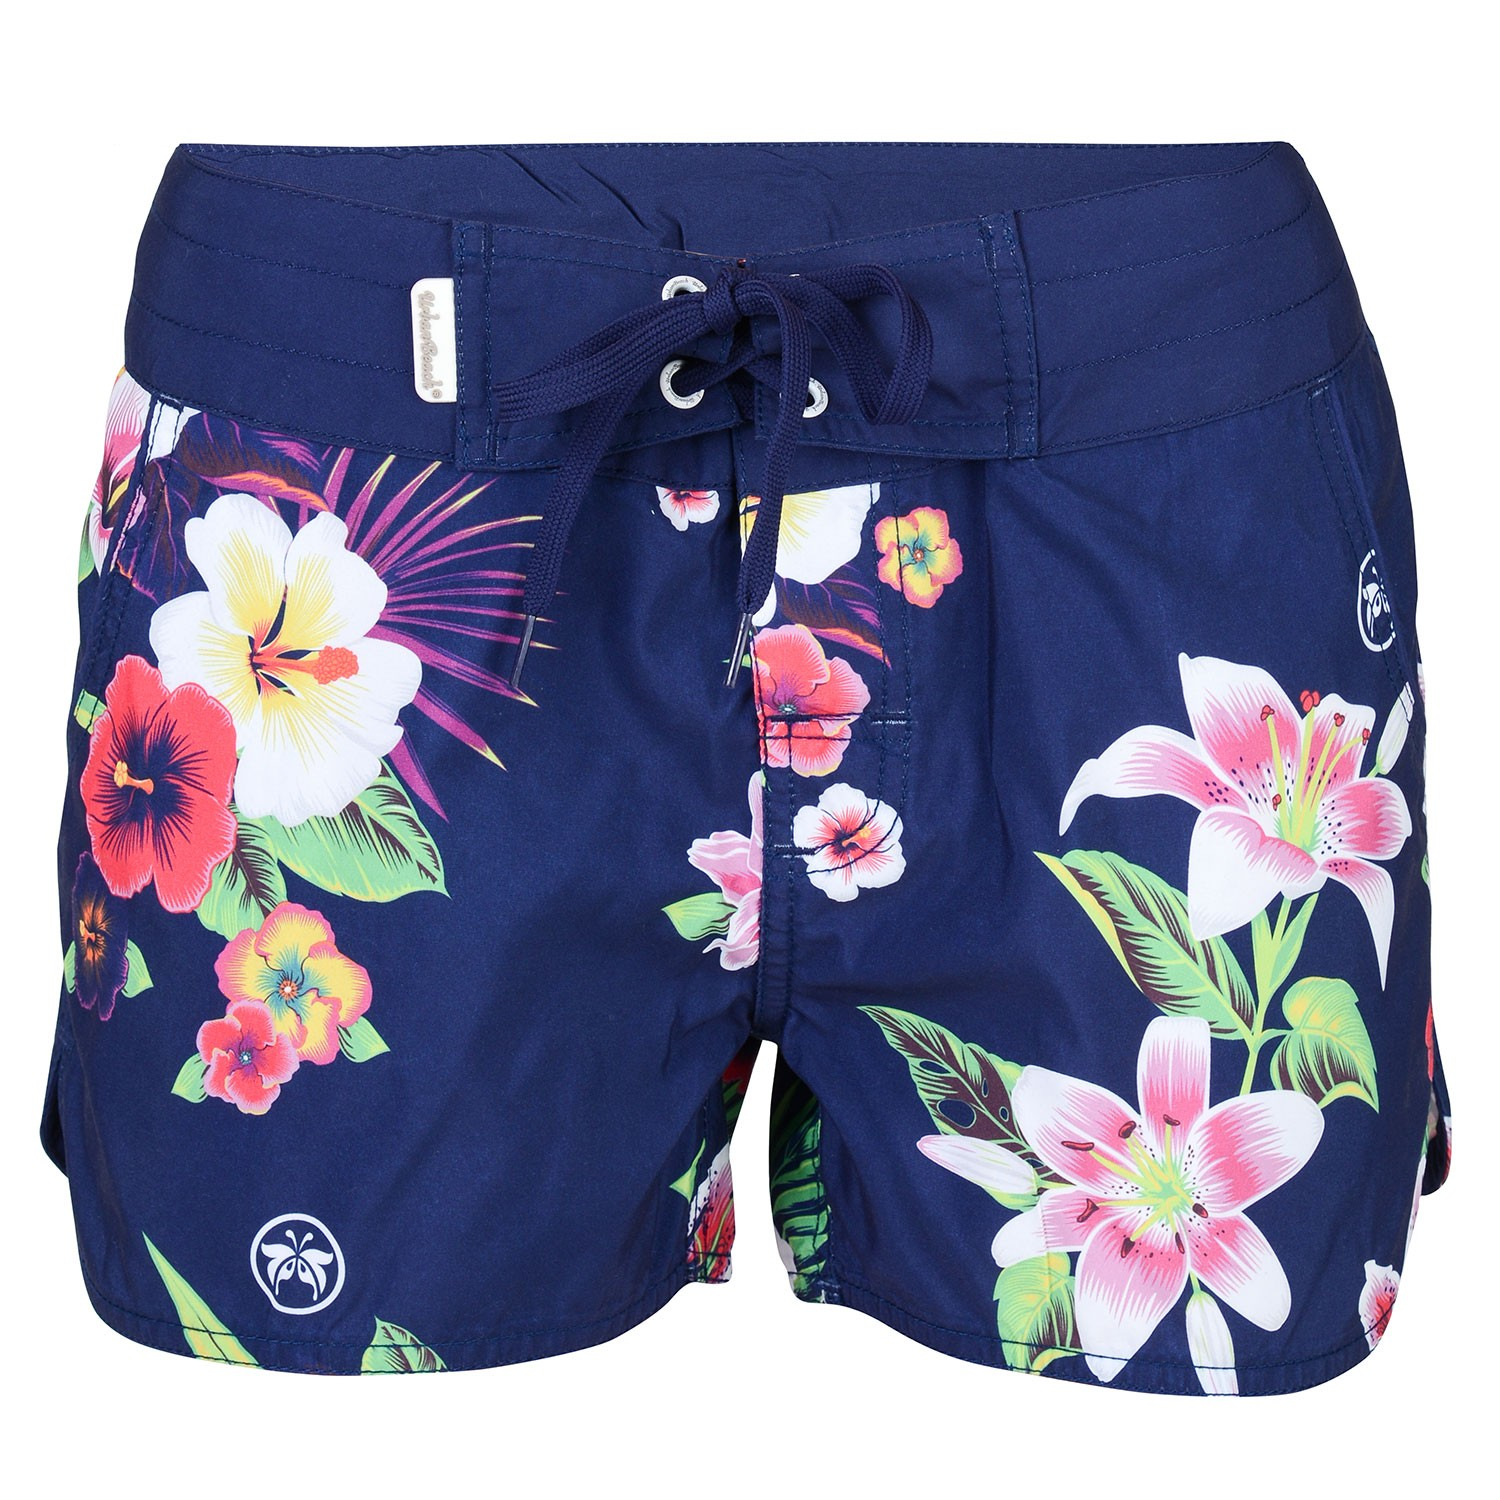 00009dea35 Womens Thurlestone Board Shorts - Navy